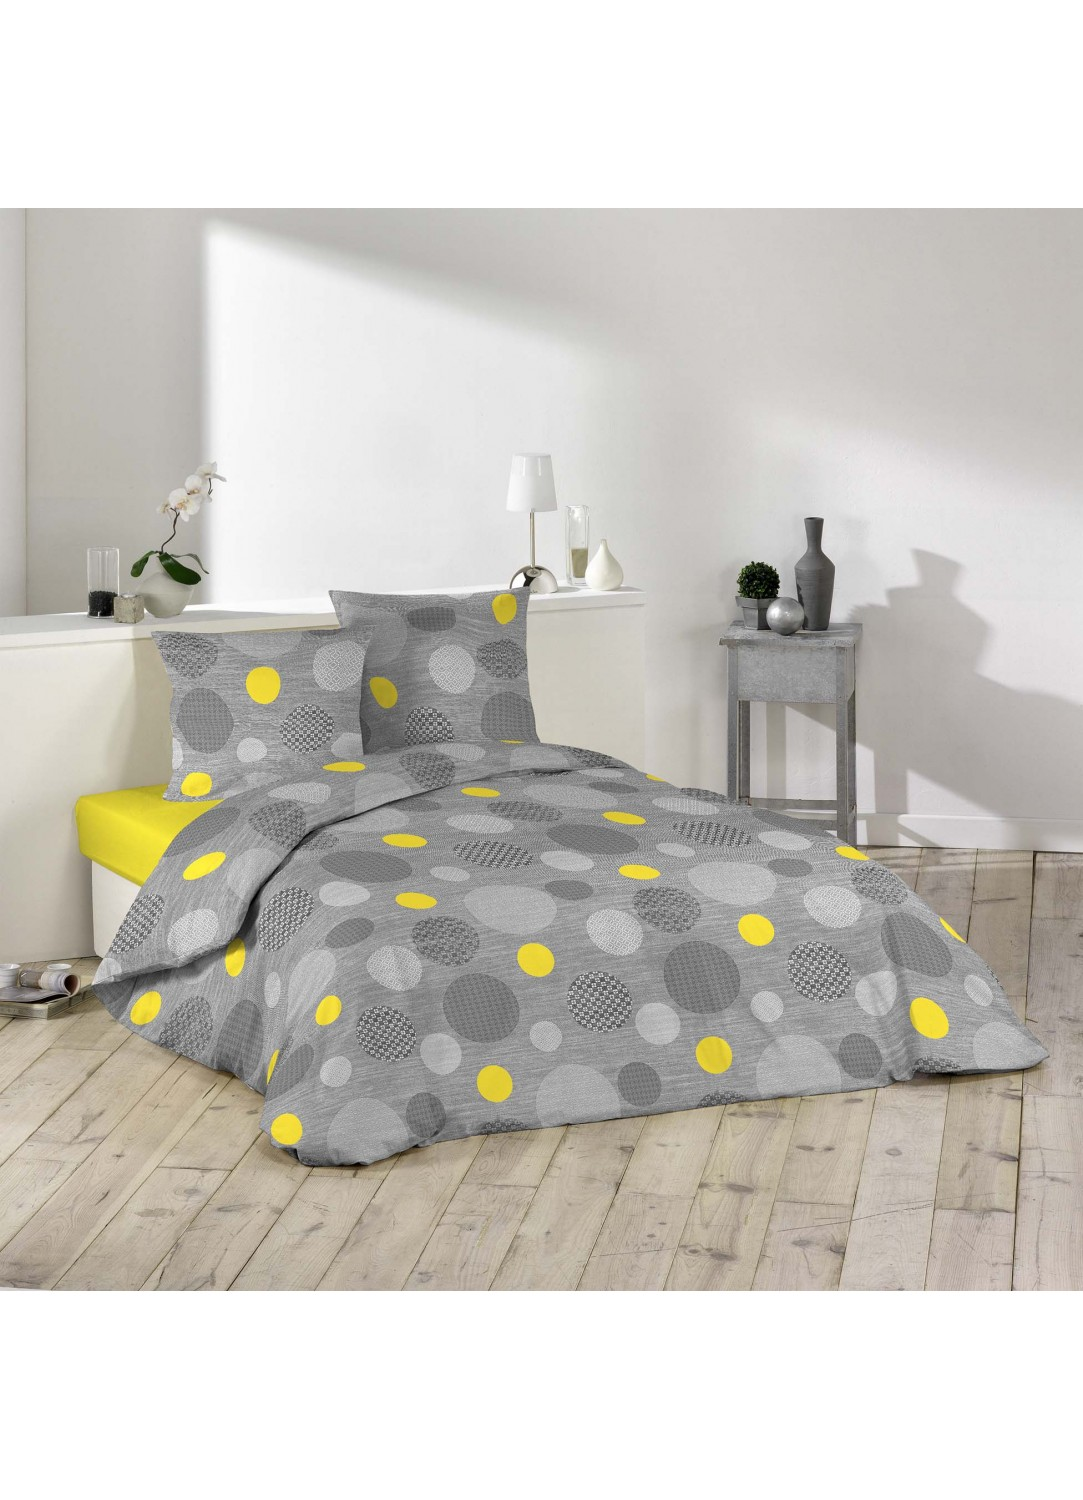 parure de lit imprim e pois jaune homemaison vente en ligne parures de lit. Black Bedroom Furniture Sets. Home Design Ideas